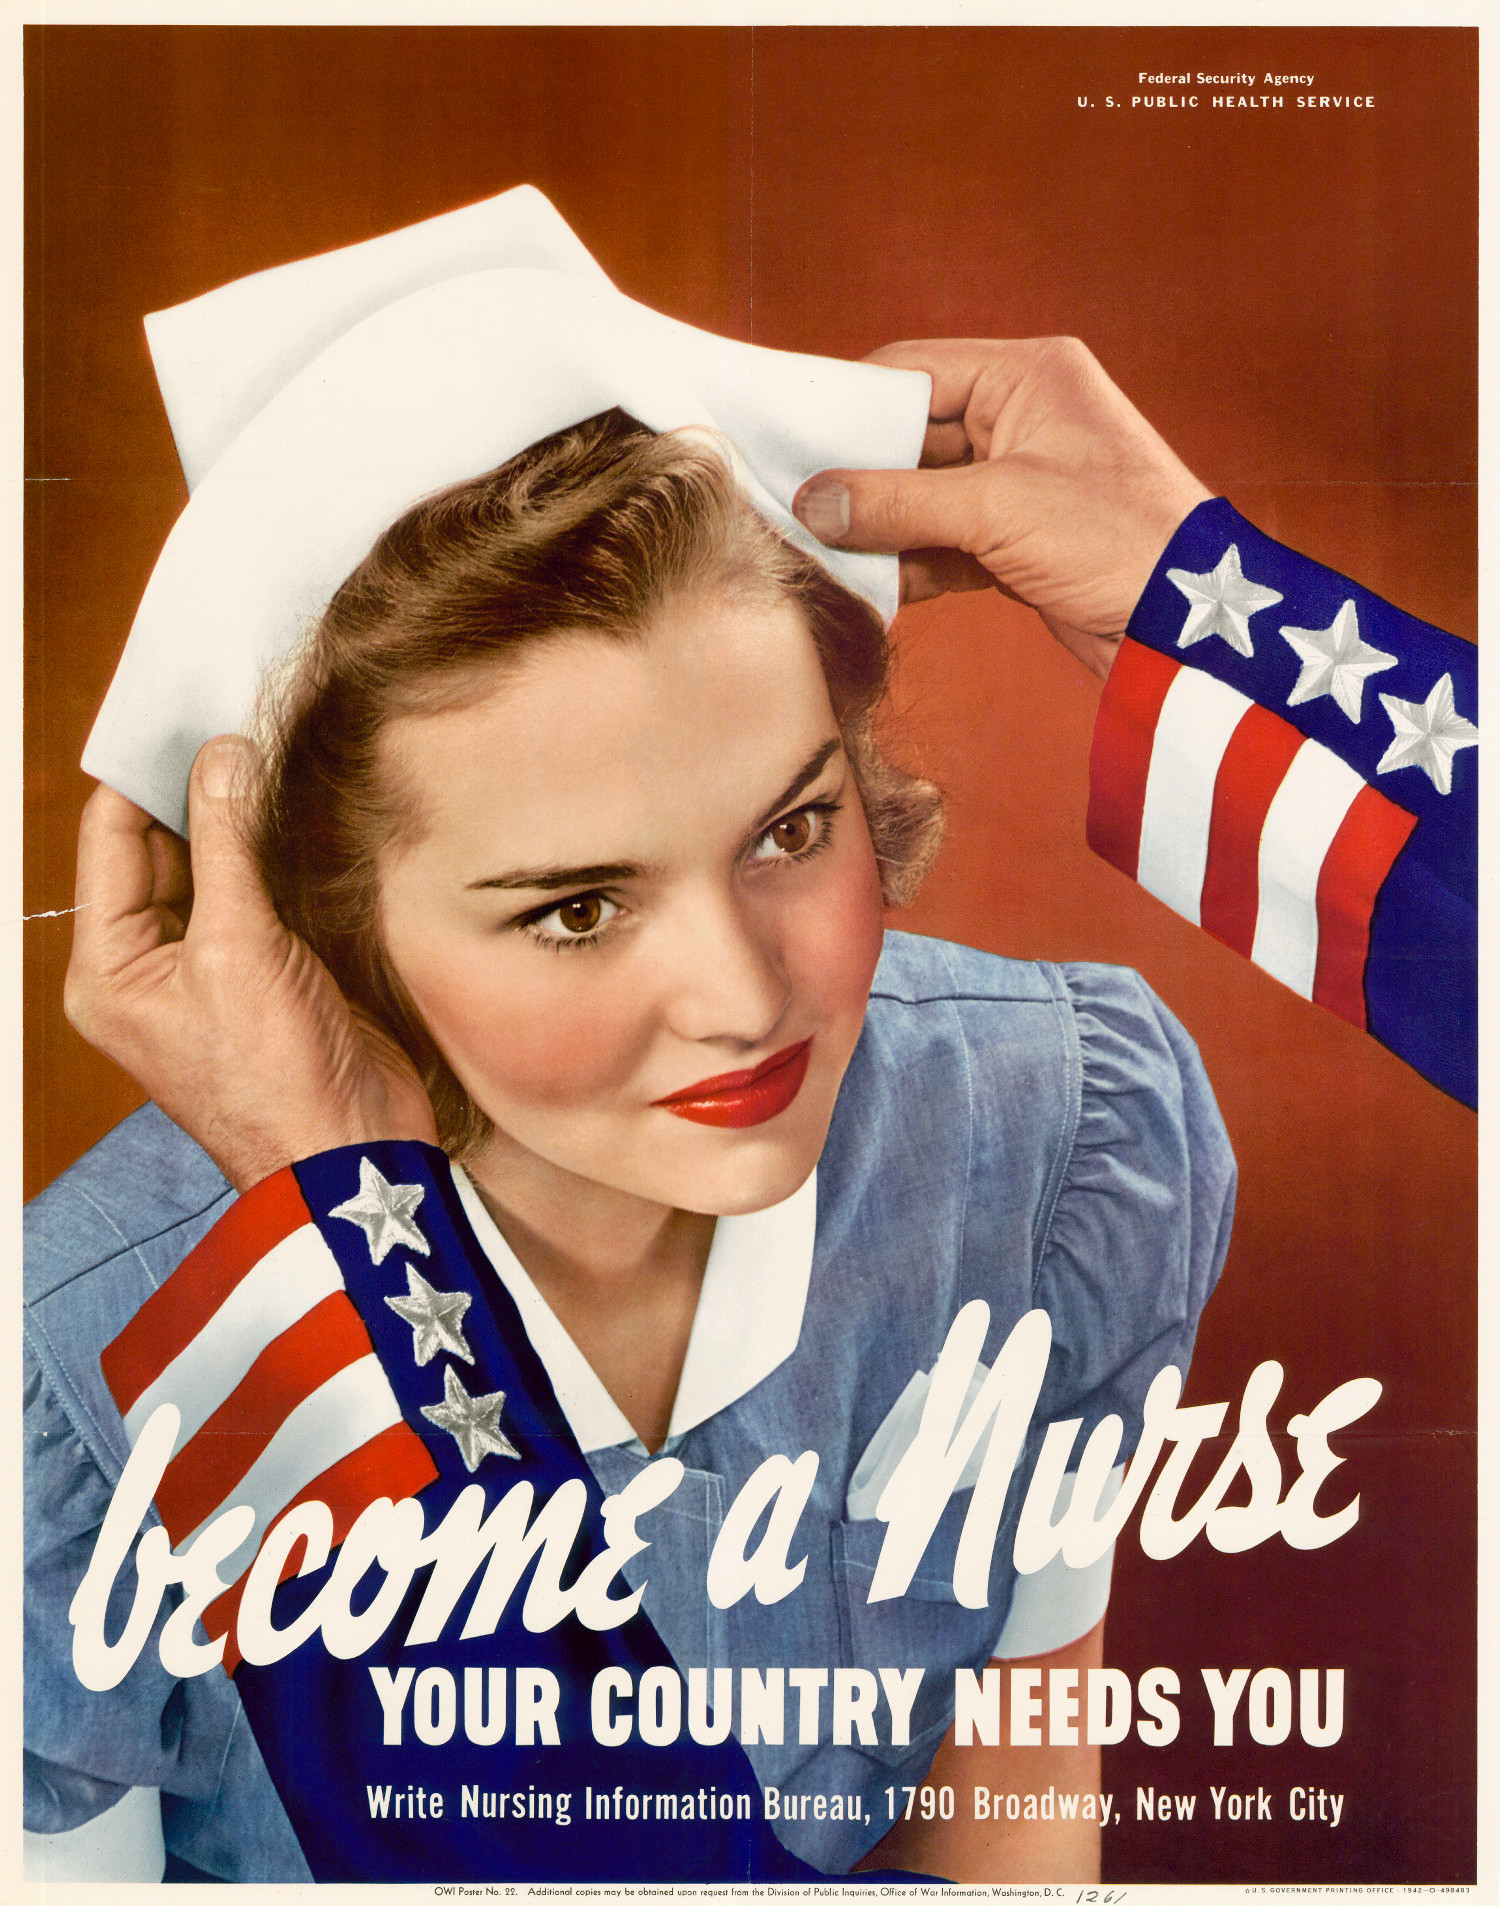 Hands placing a hat on a nurse